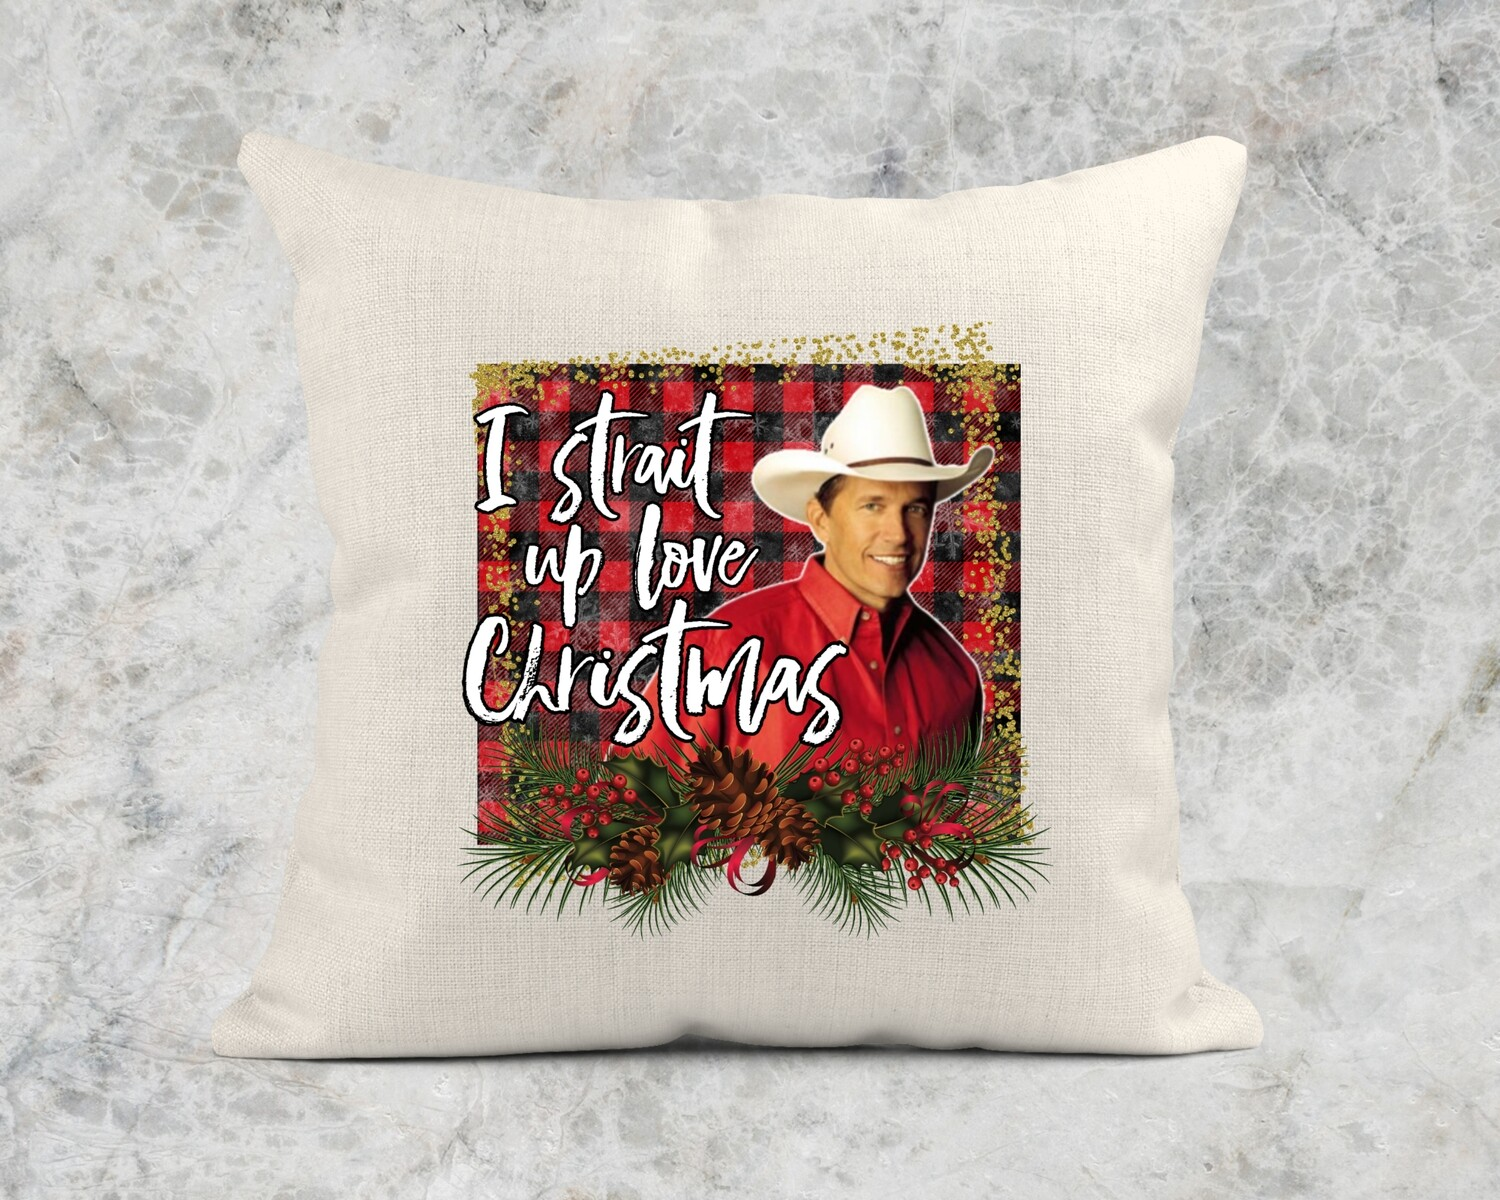 STRAIT UP LOVE CHRISTMAS PILLOW